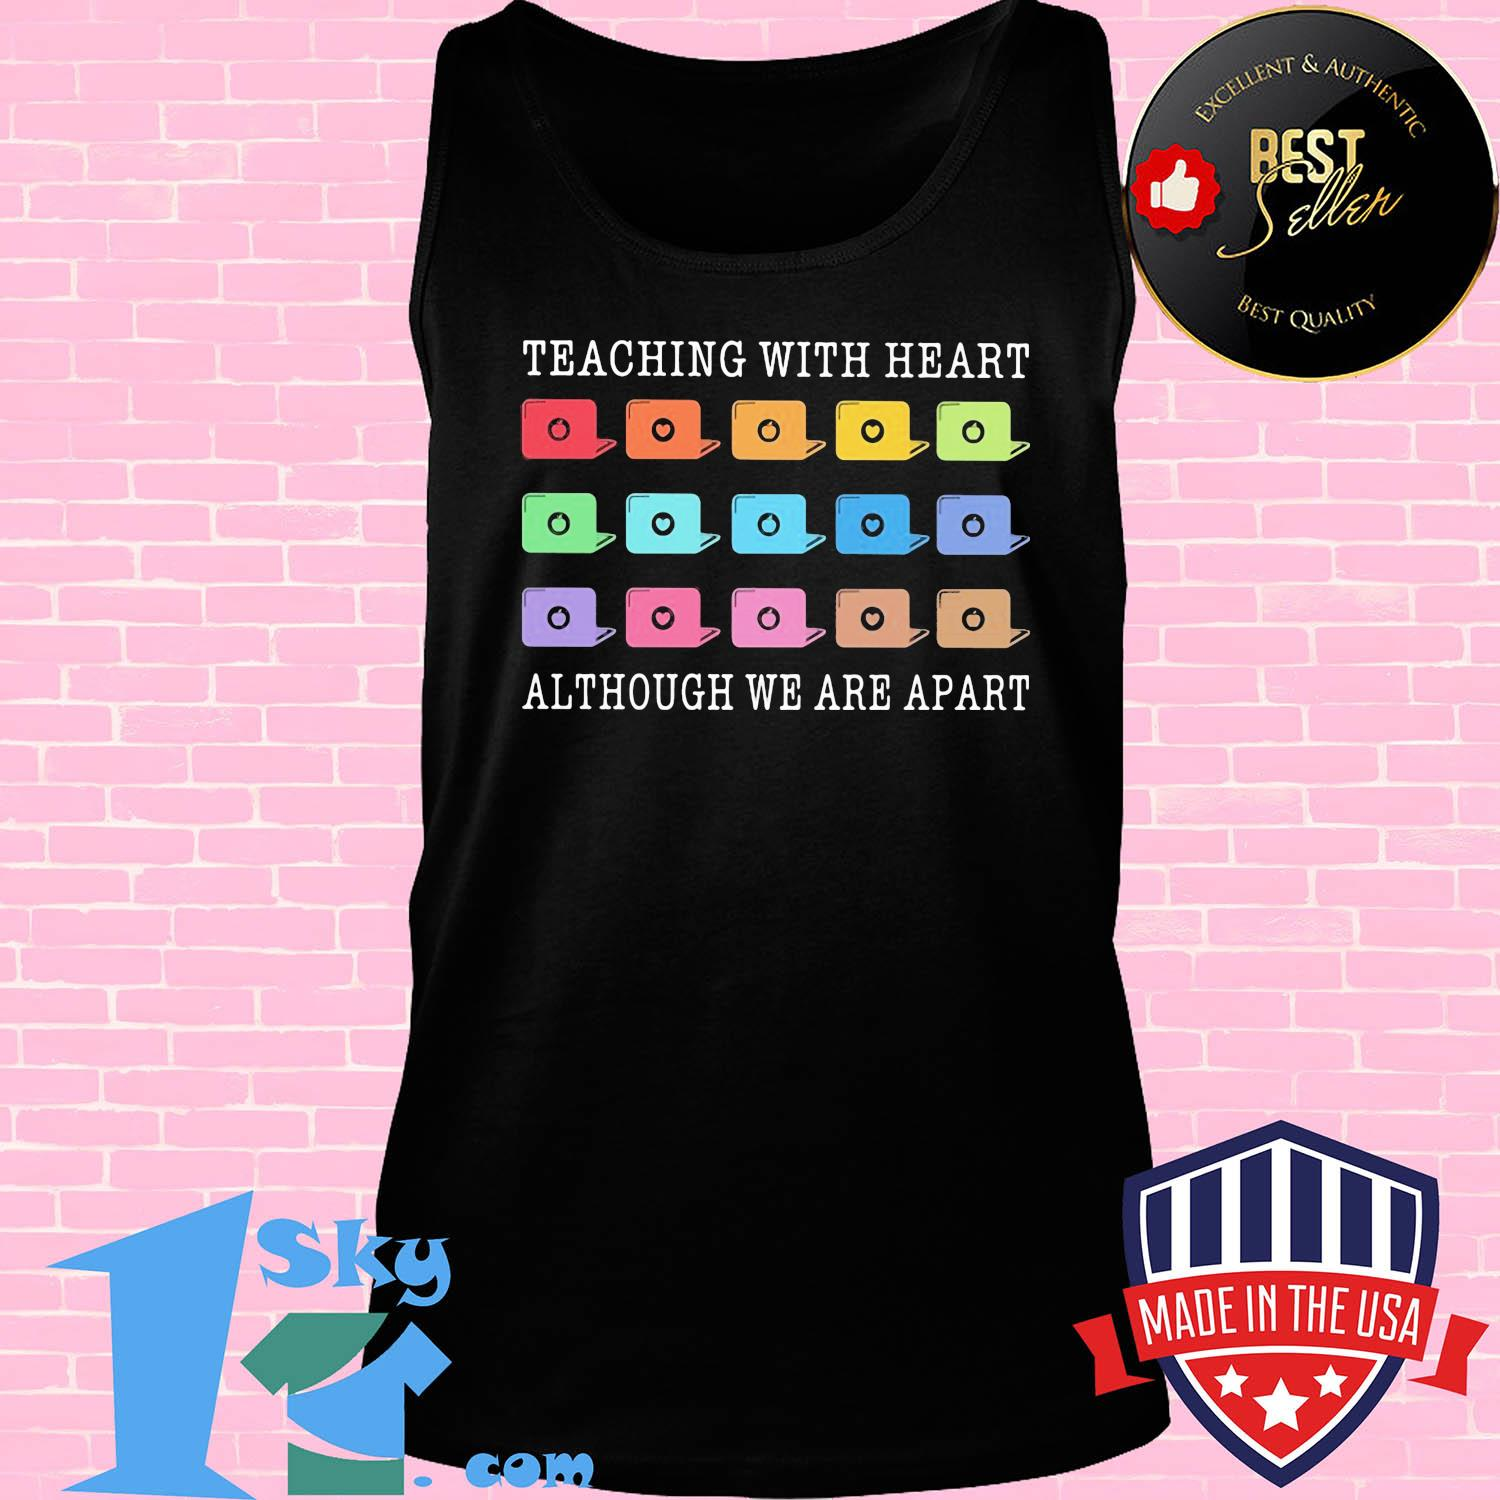 Teaching with heart although we are apart shirt